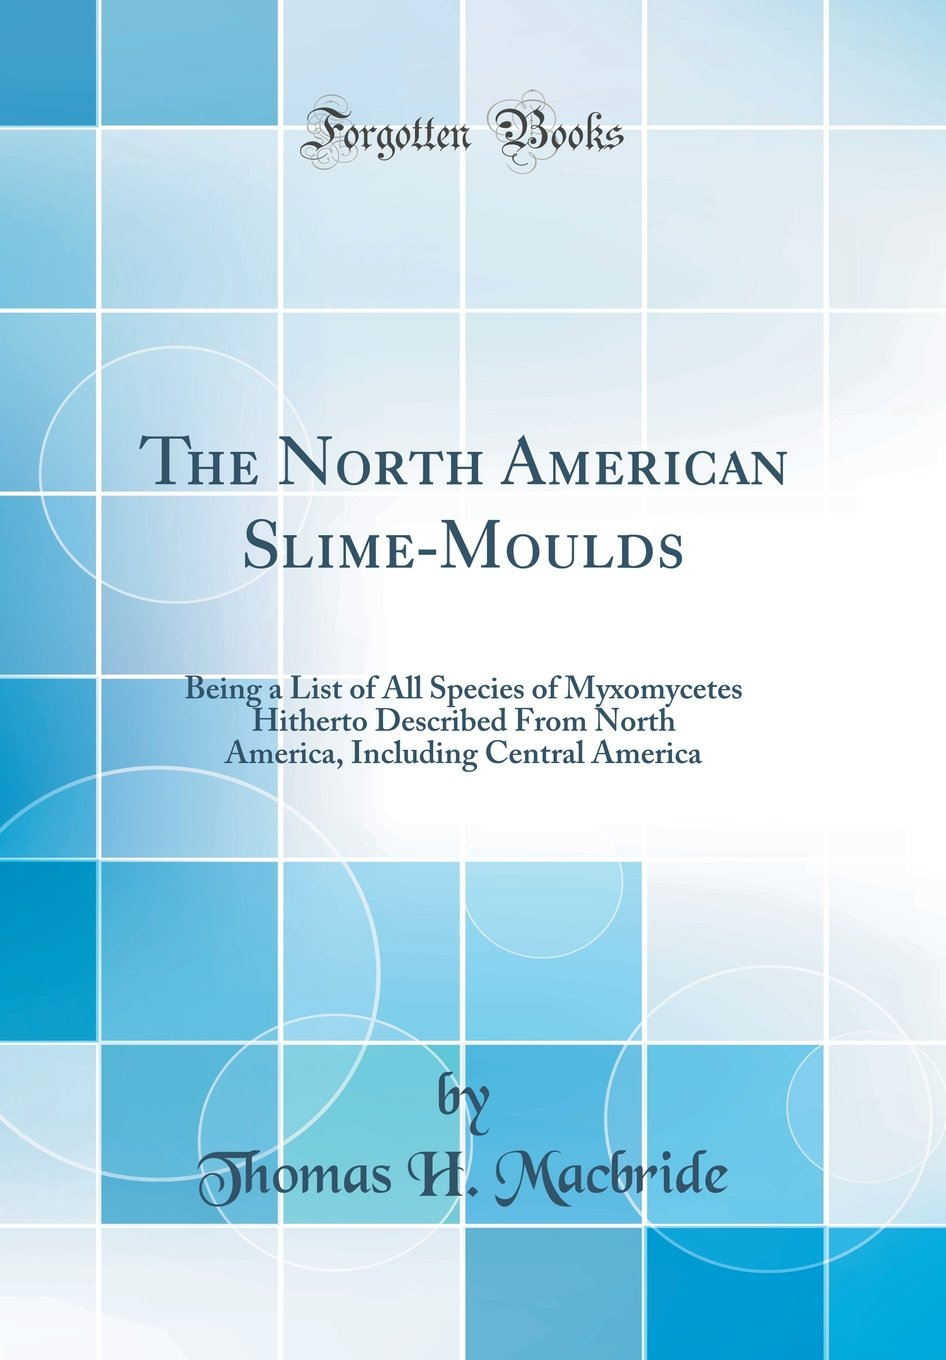 Download The North American Slime-Moulds: Being a List of All Species of Myxomycetes Hitherto Described from North America, Including Central America (Classic Reprint) pdf